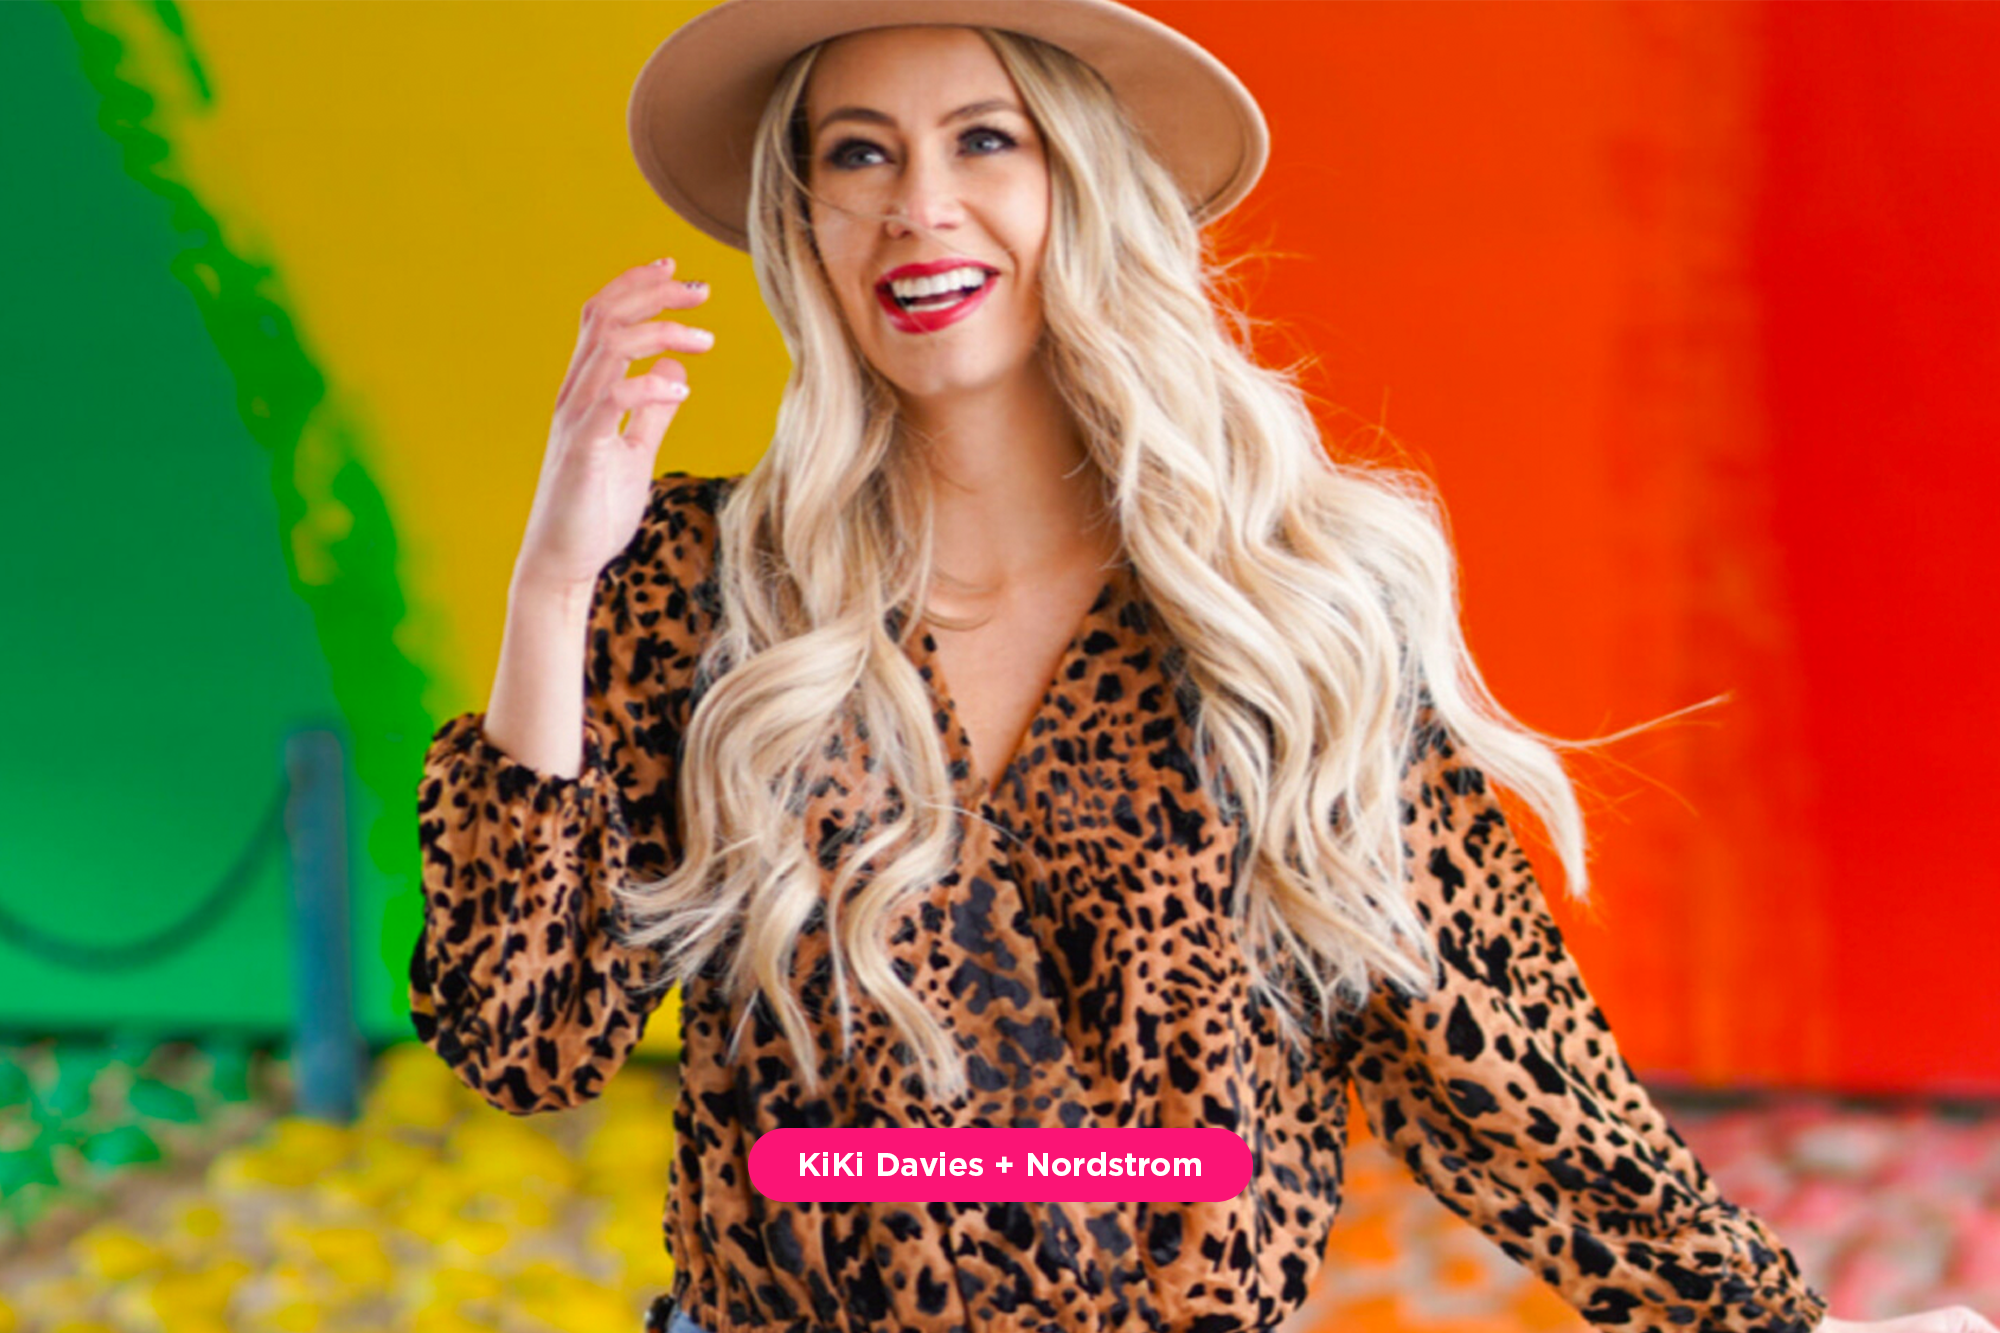 13 Influencer Marketing Trends to Help You Boost Brand Awareness